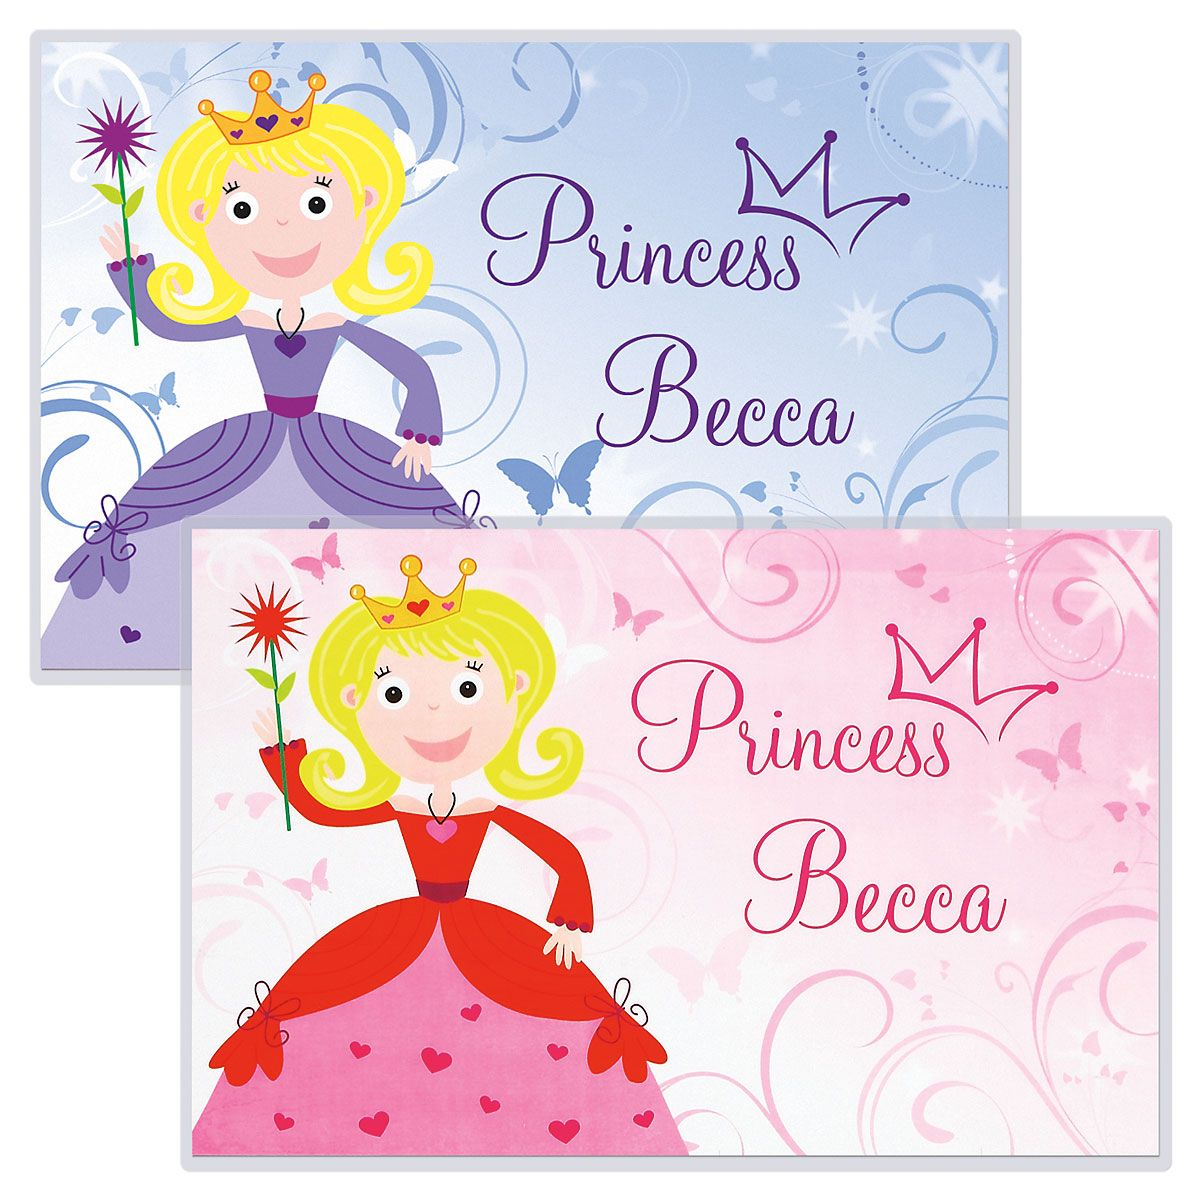 Princess Kids' Placemat